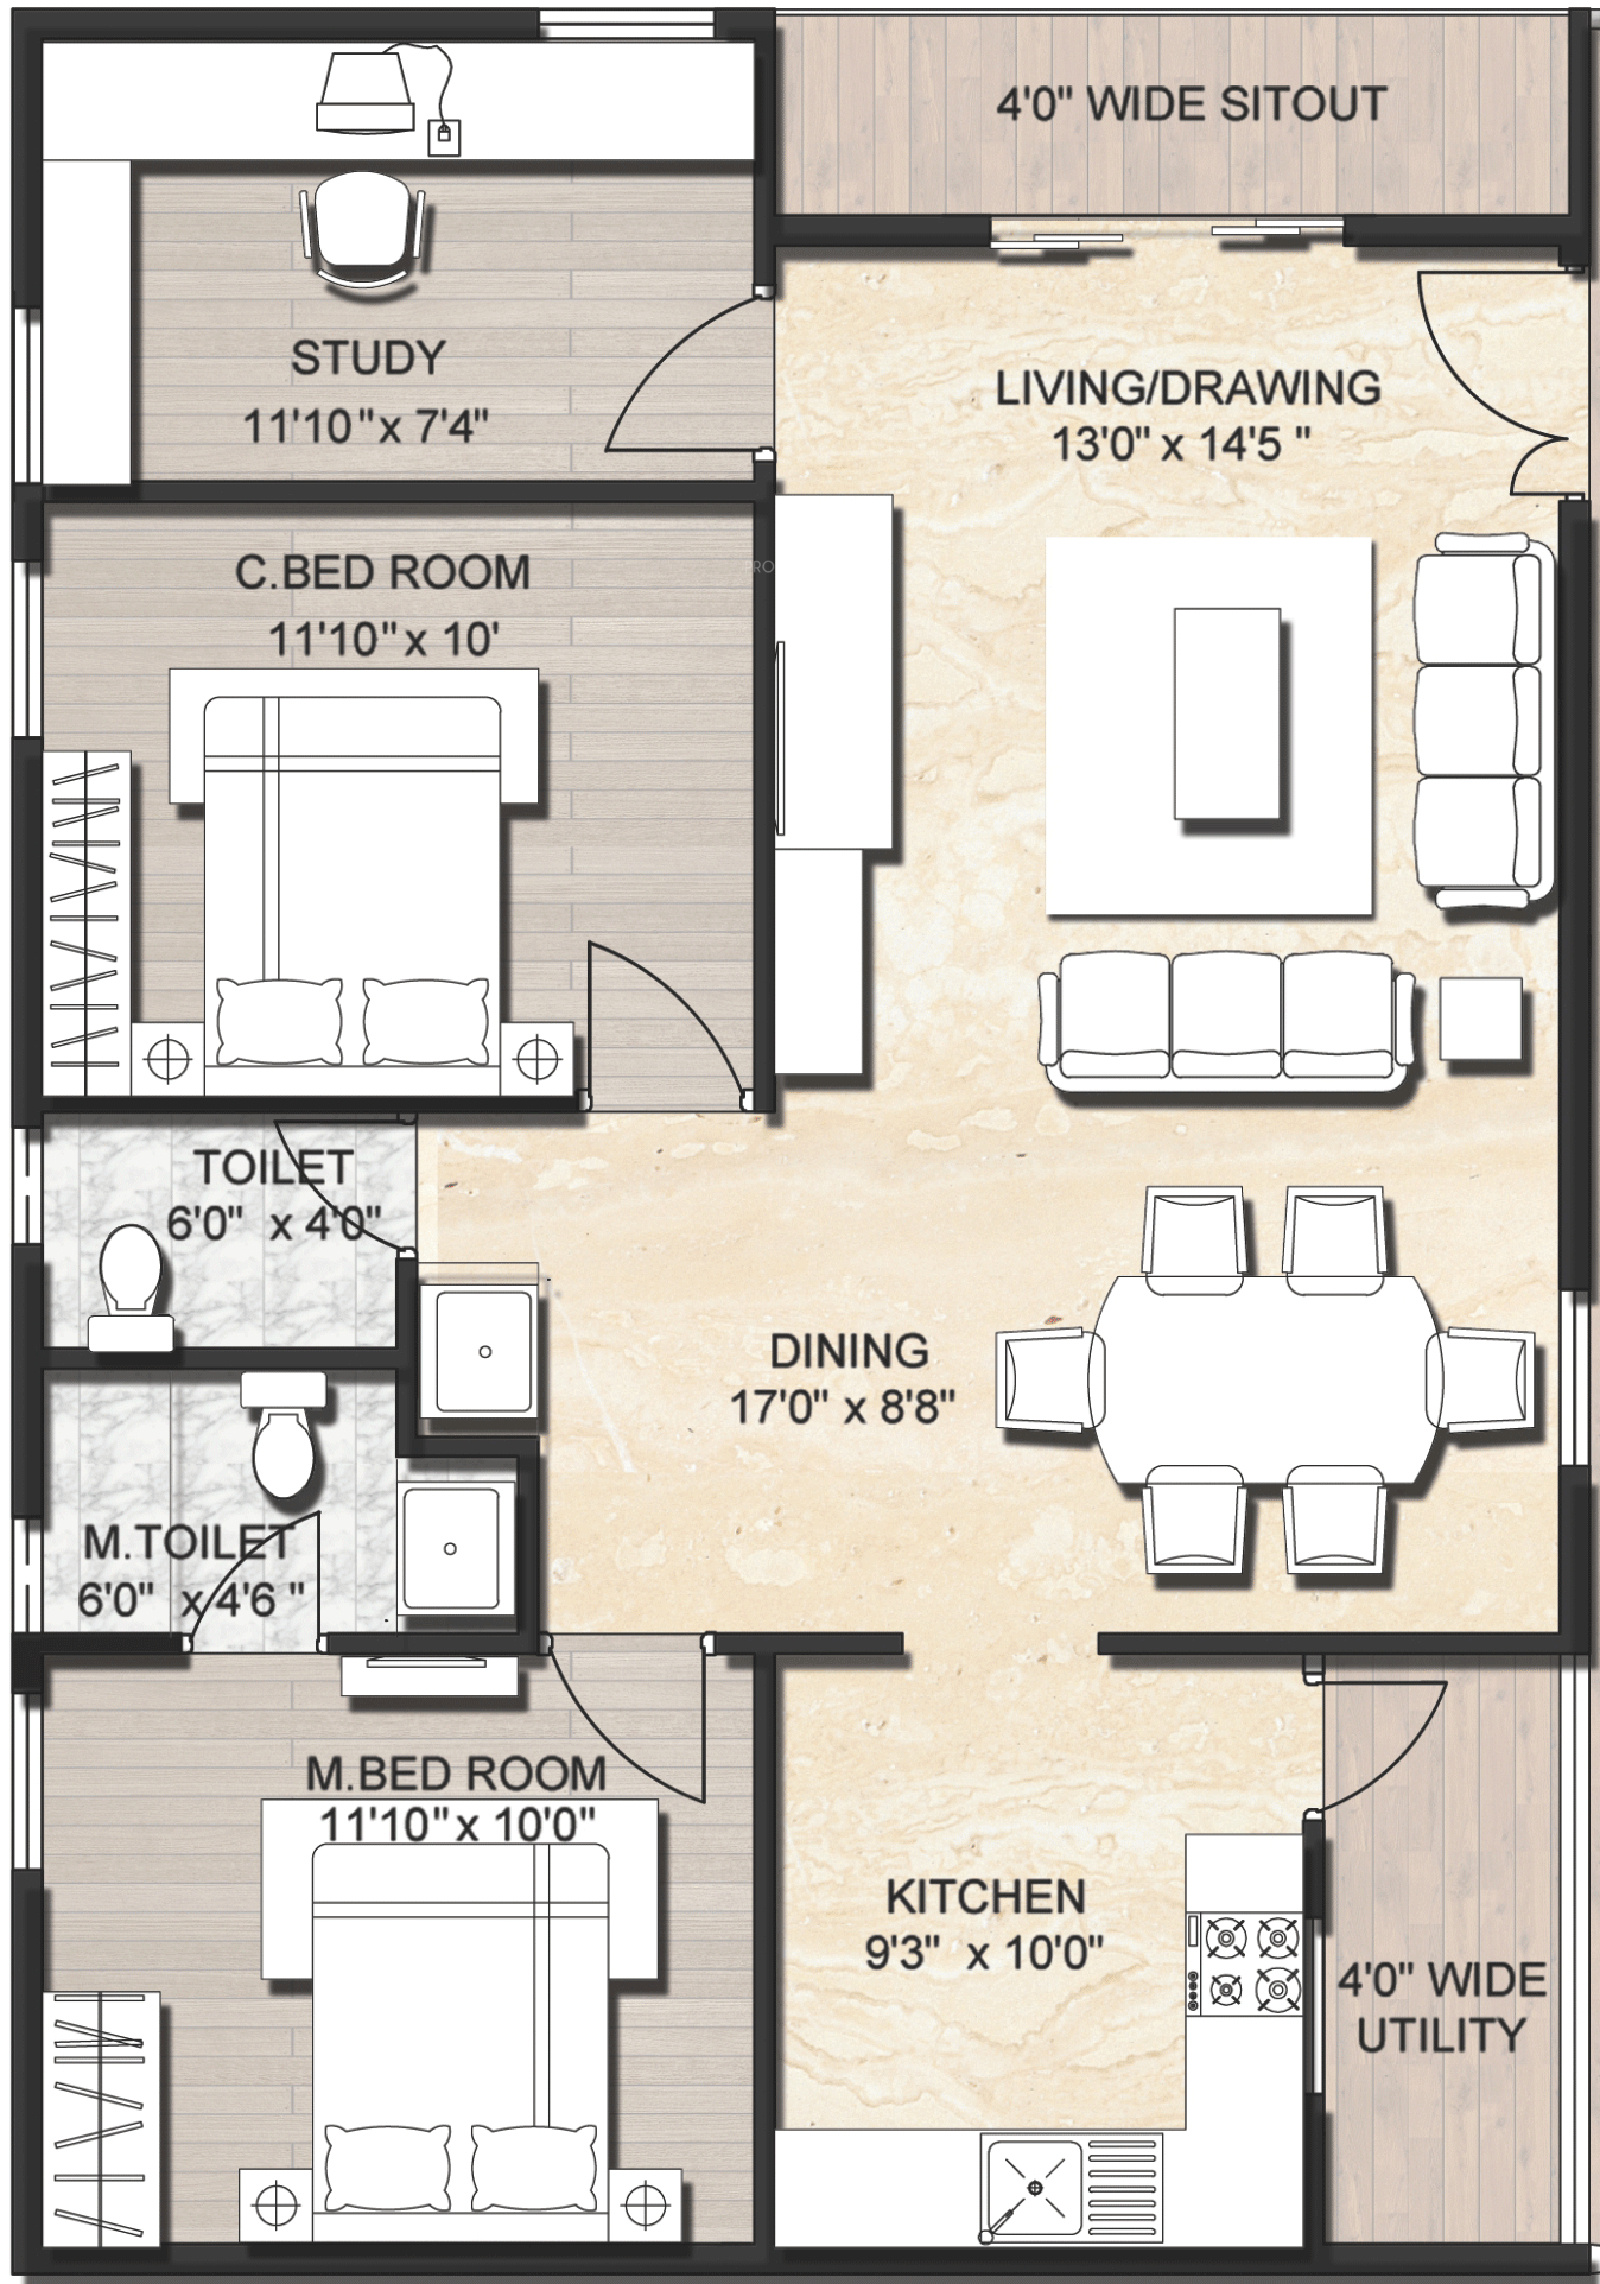 Apartment Floor Plans India remarkable floor plan 1200 sq ft house images - best image engine